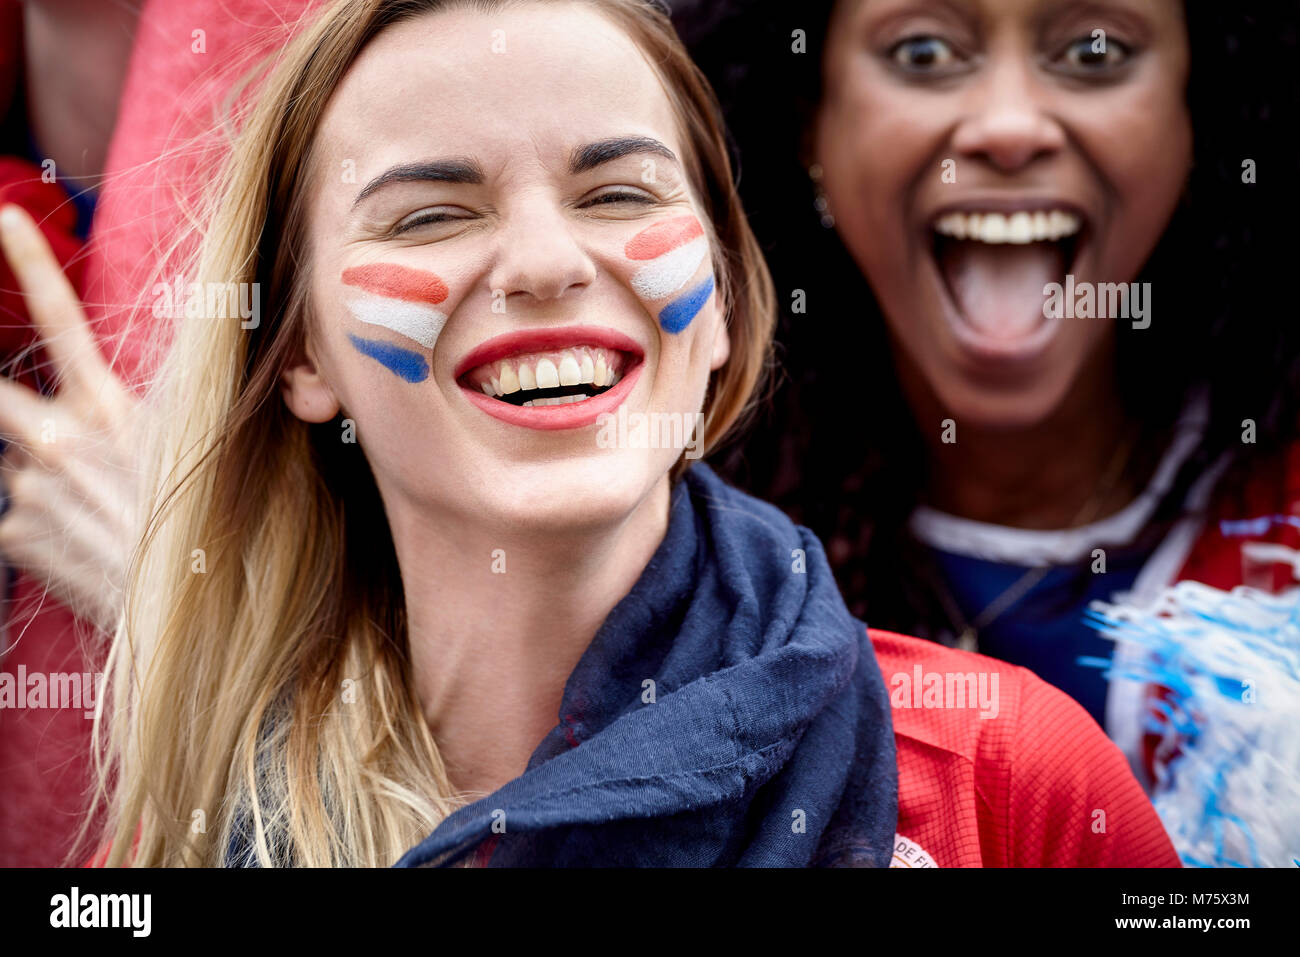 French football fans smiling and cheering at match - Stock Image